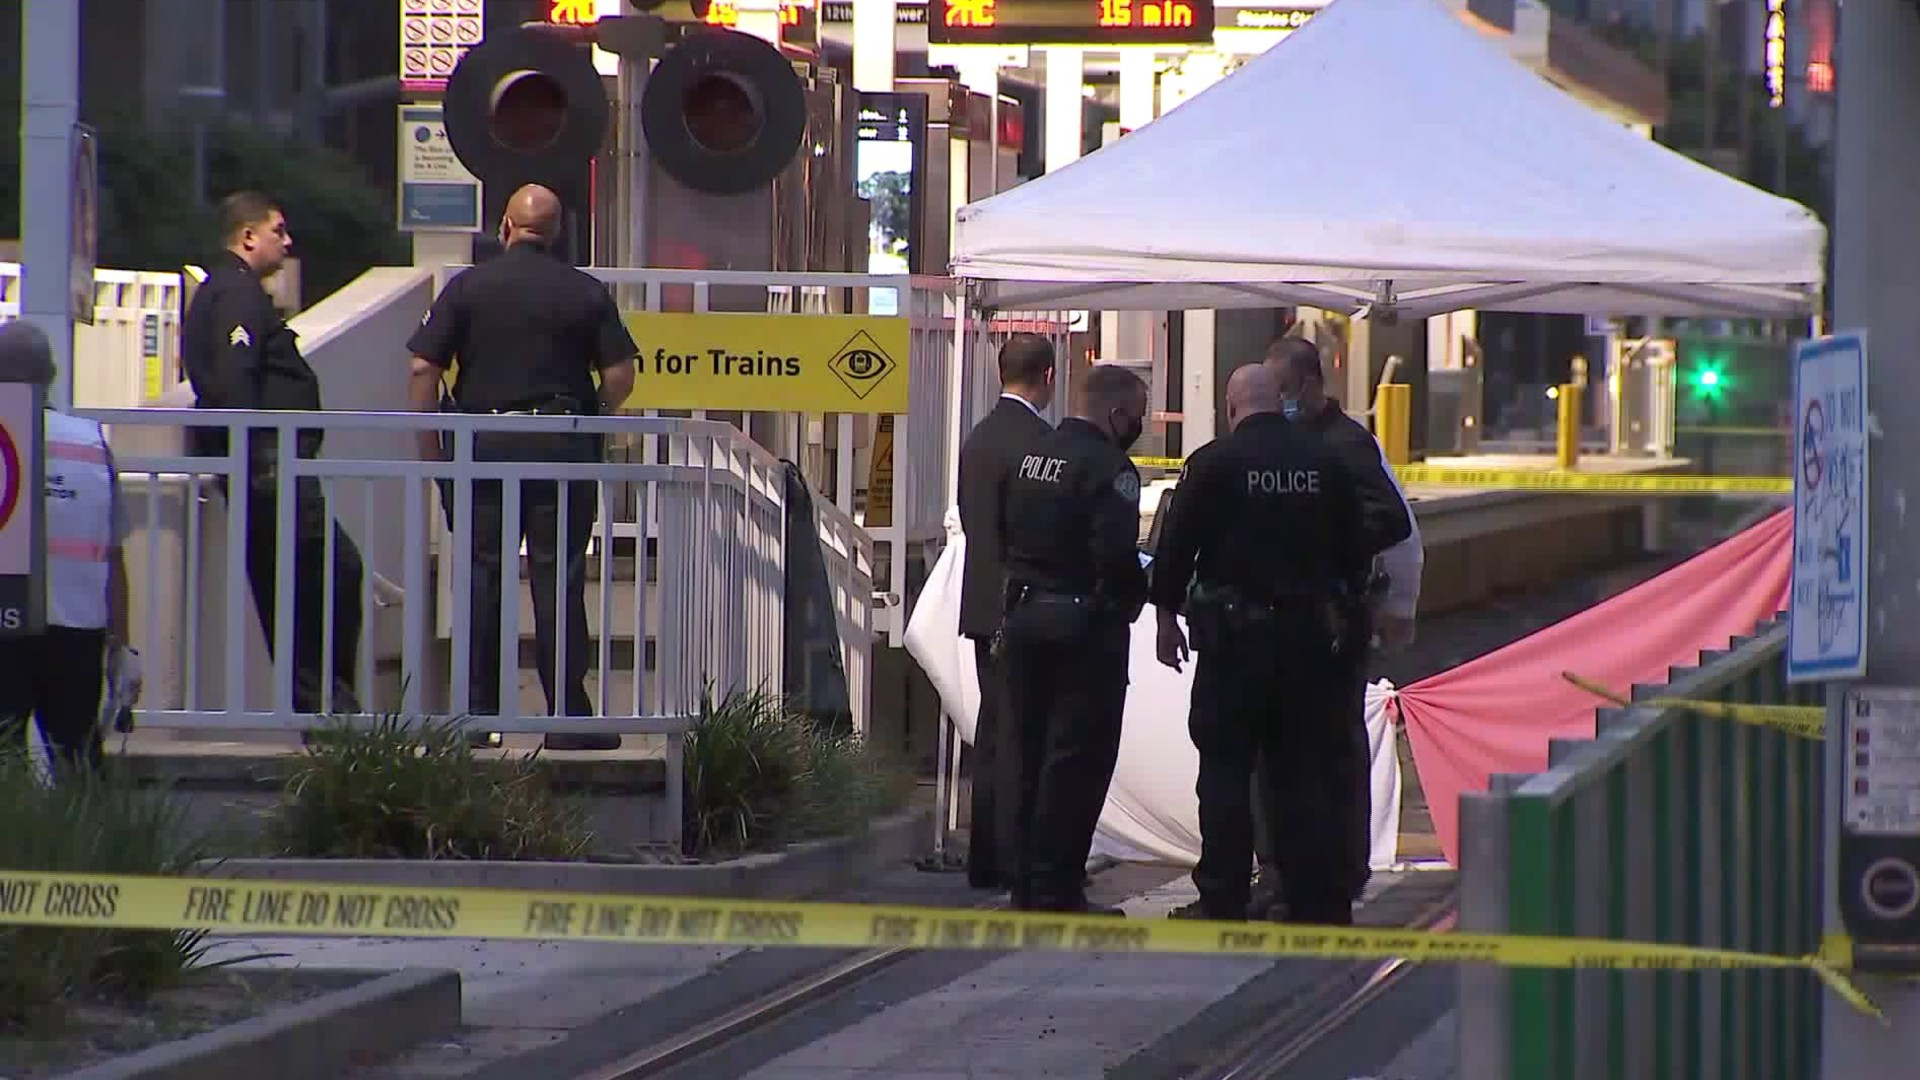 Investigators stand near a canopy at the Pico Station in downtown Los Angeles on July 2, 2020. (KTLA)